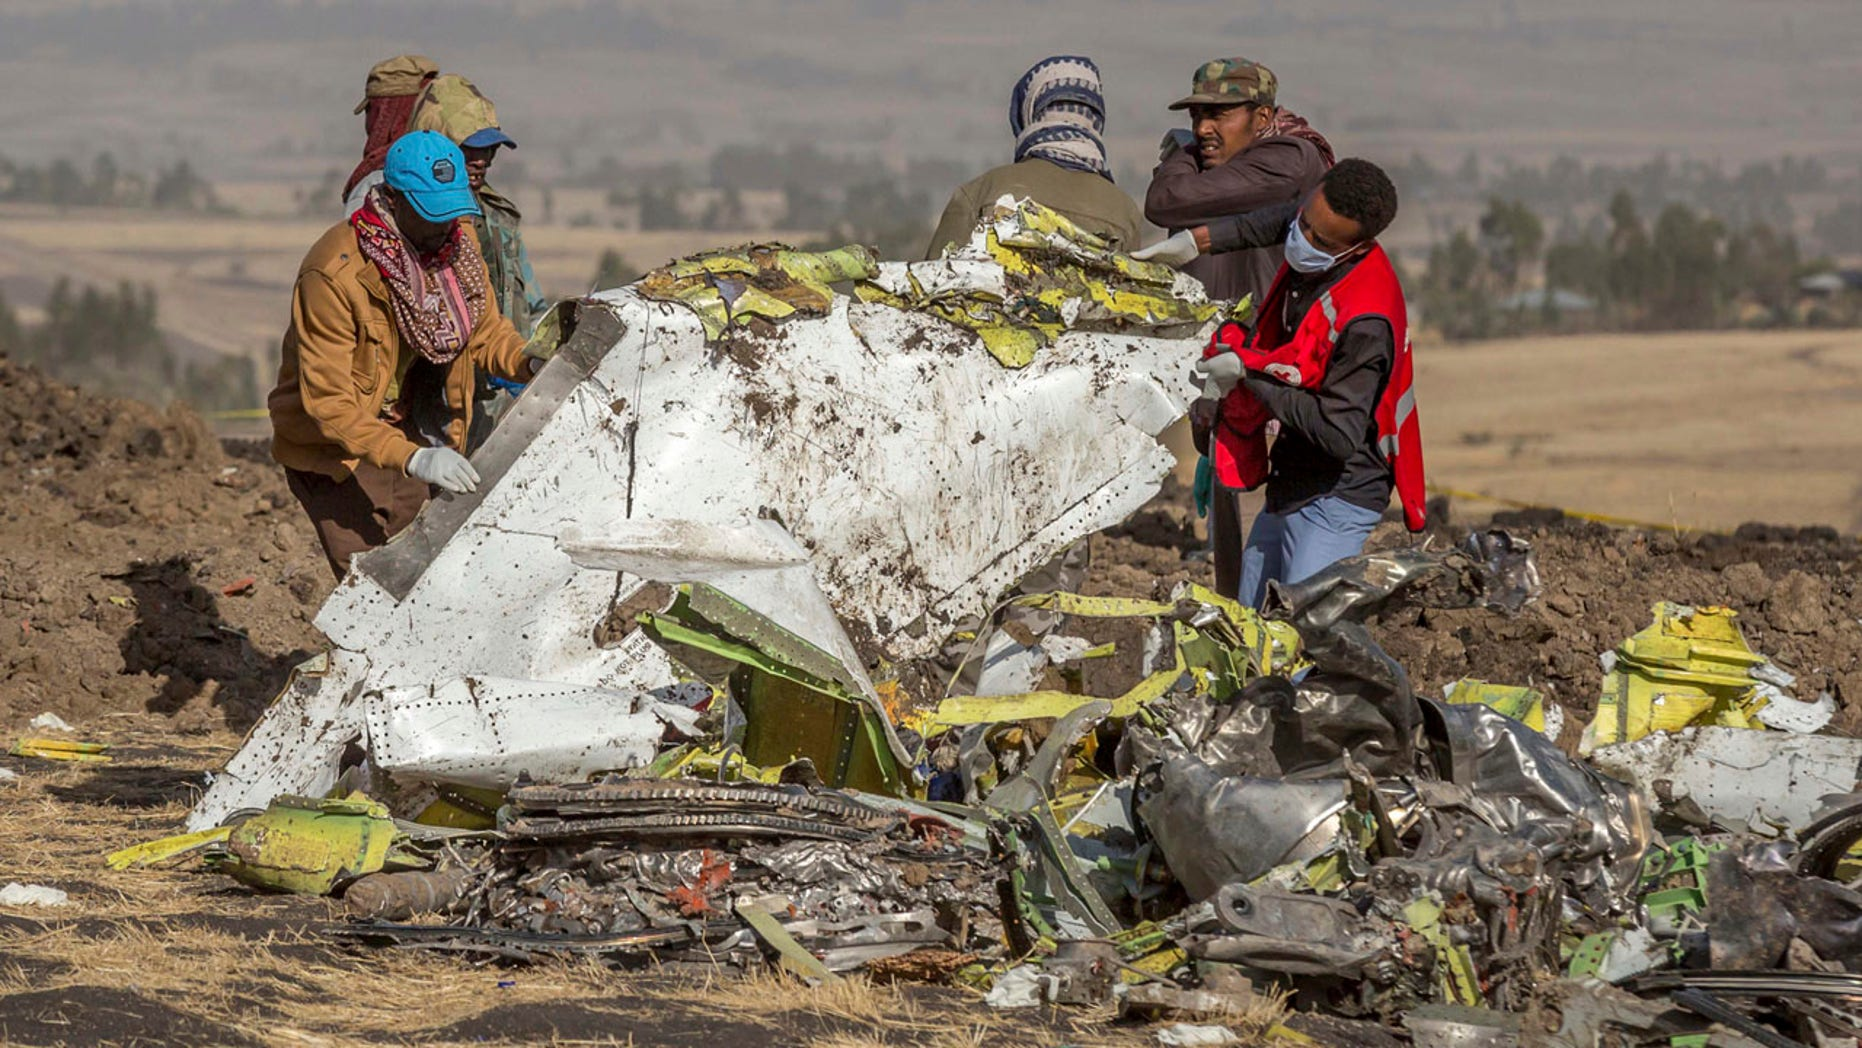 Boeing and the Federal Aviation Administration rushed the approval of the security system in the 737 MAX and overlooked important flaws that may have contributed to the crashes in Indonesia and Ethiopia, according to current and former engineers. Rescuers are pictured here recovering wreckage from the Ethiopian Airlines flight, which crashed on March 10